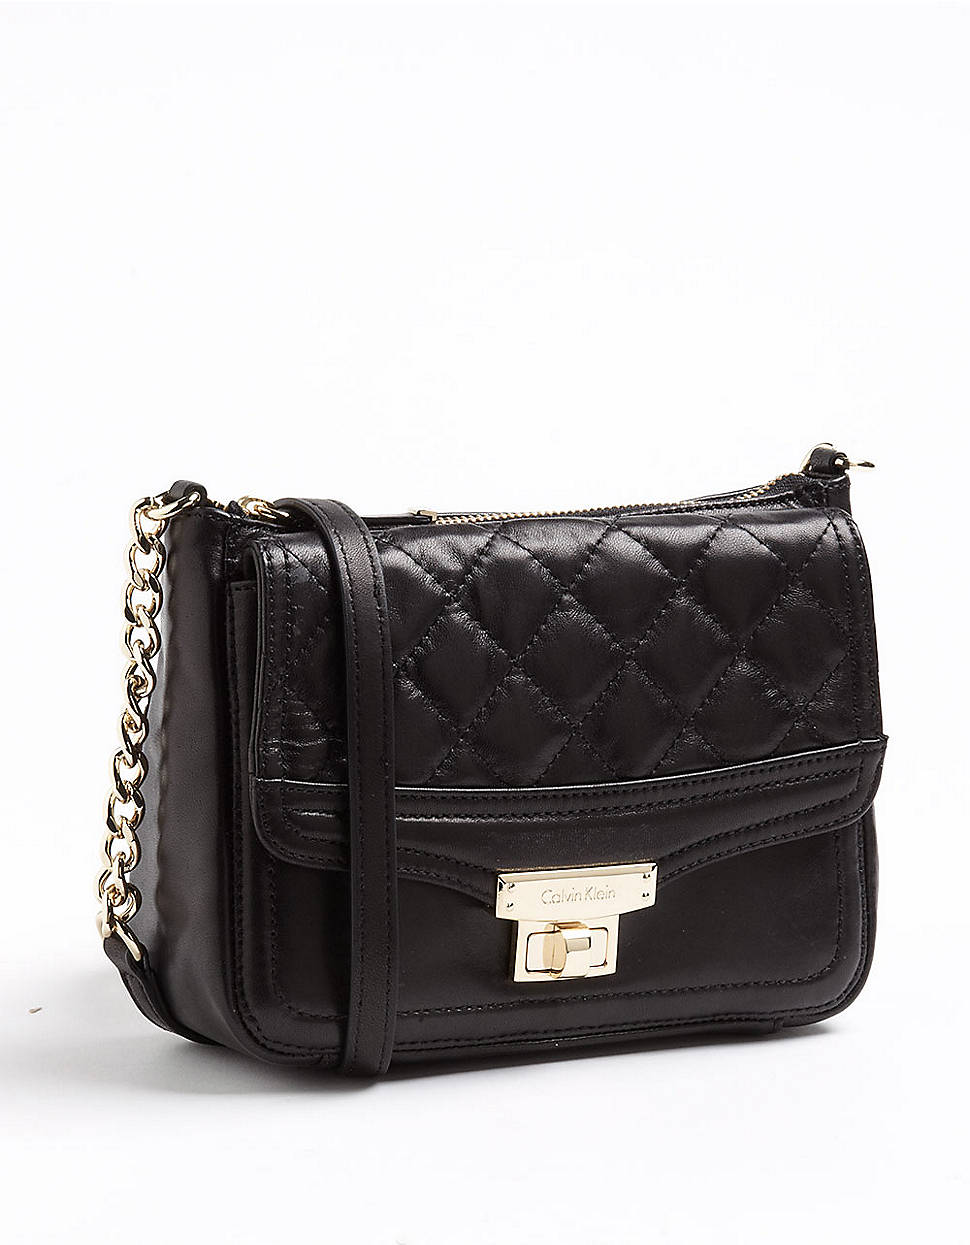 Lyst Calvin Klein Leather Quilted Crossbody Bag In Black